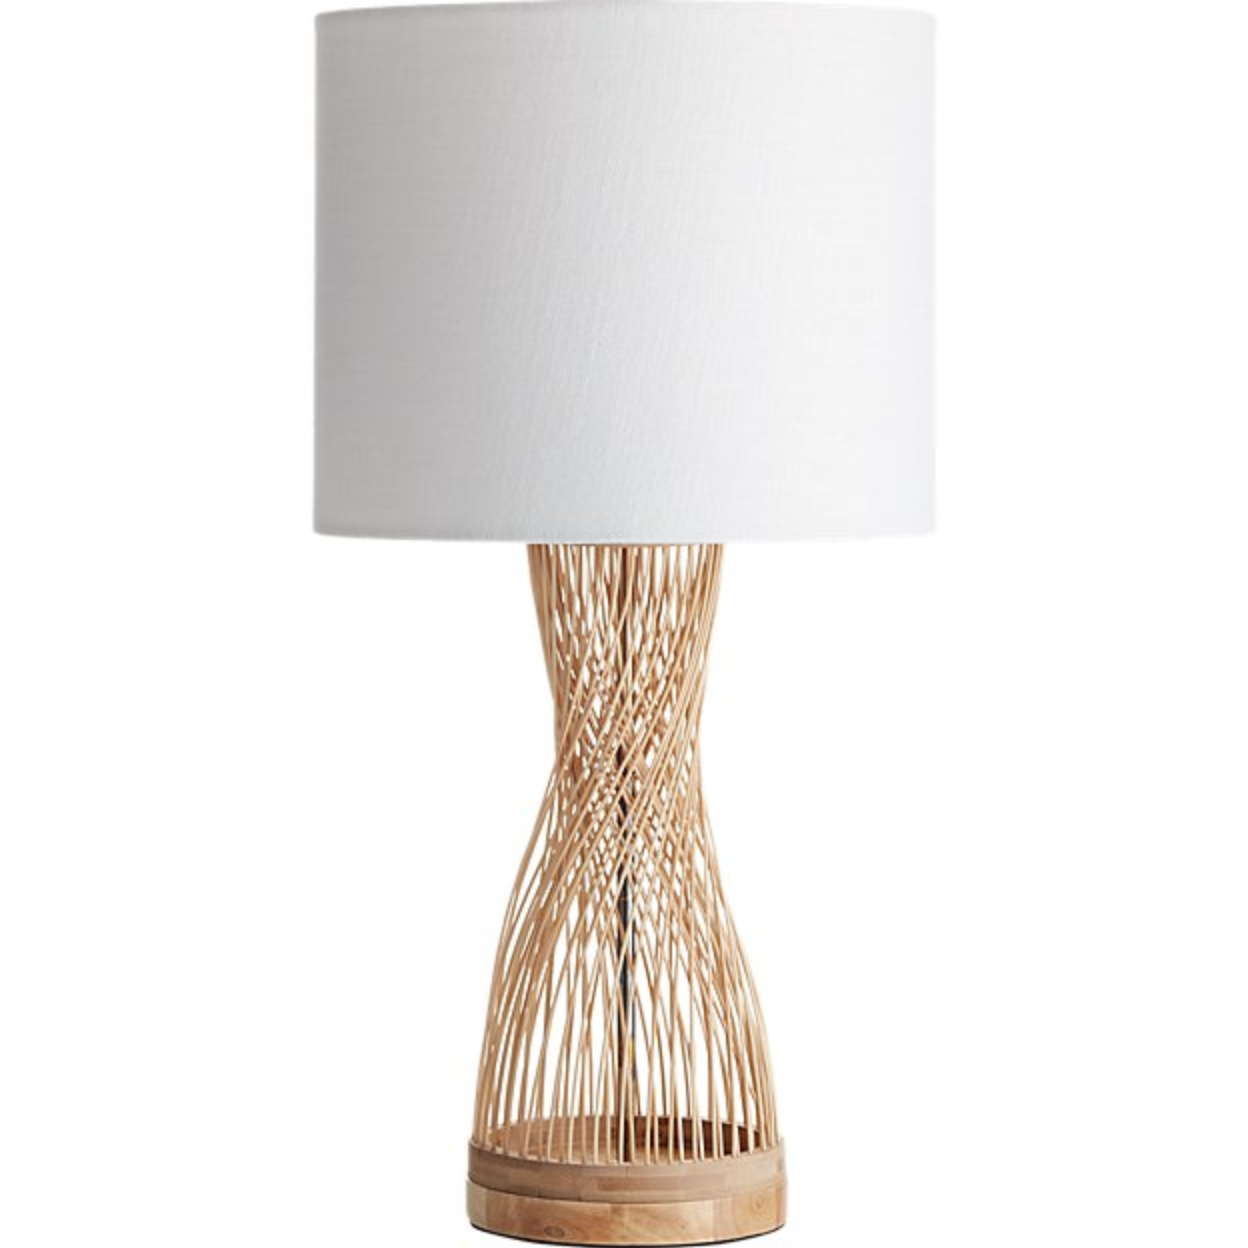 Rattan lamp - Rattan table lamp with white shade, $129; CB2